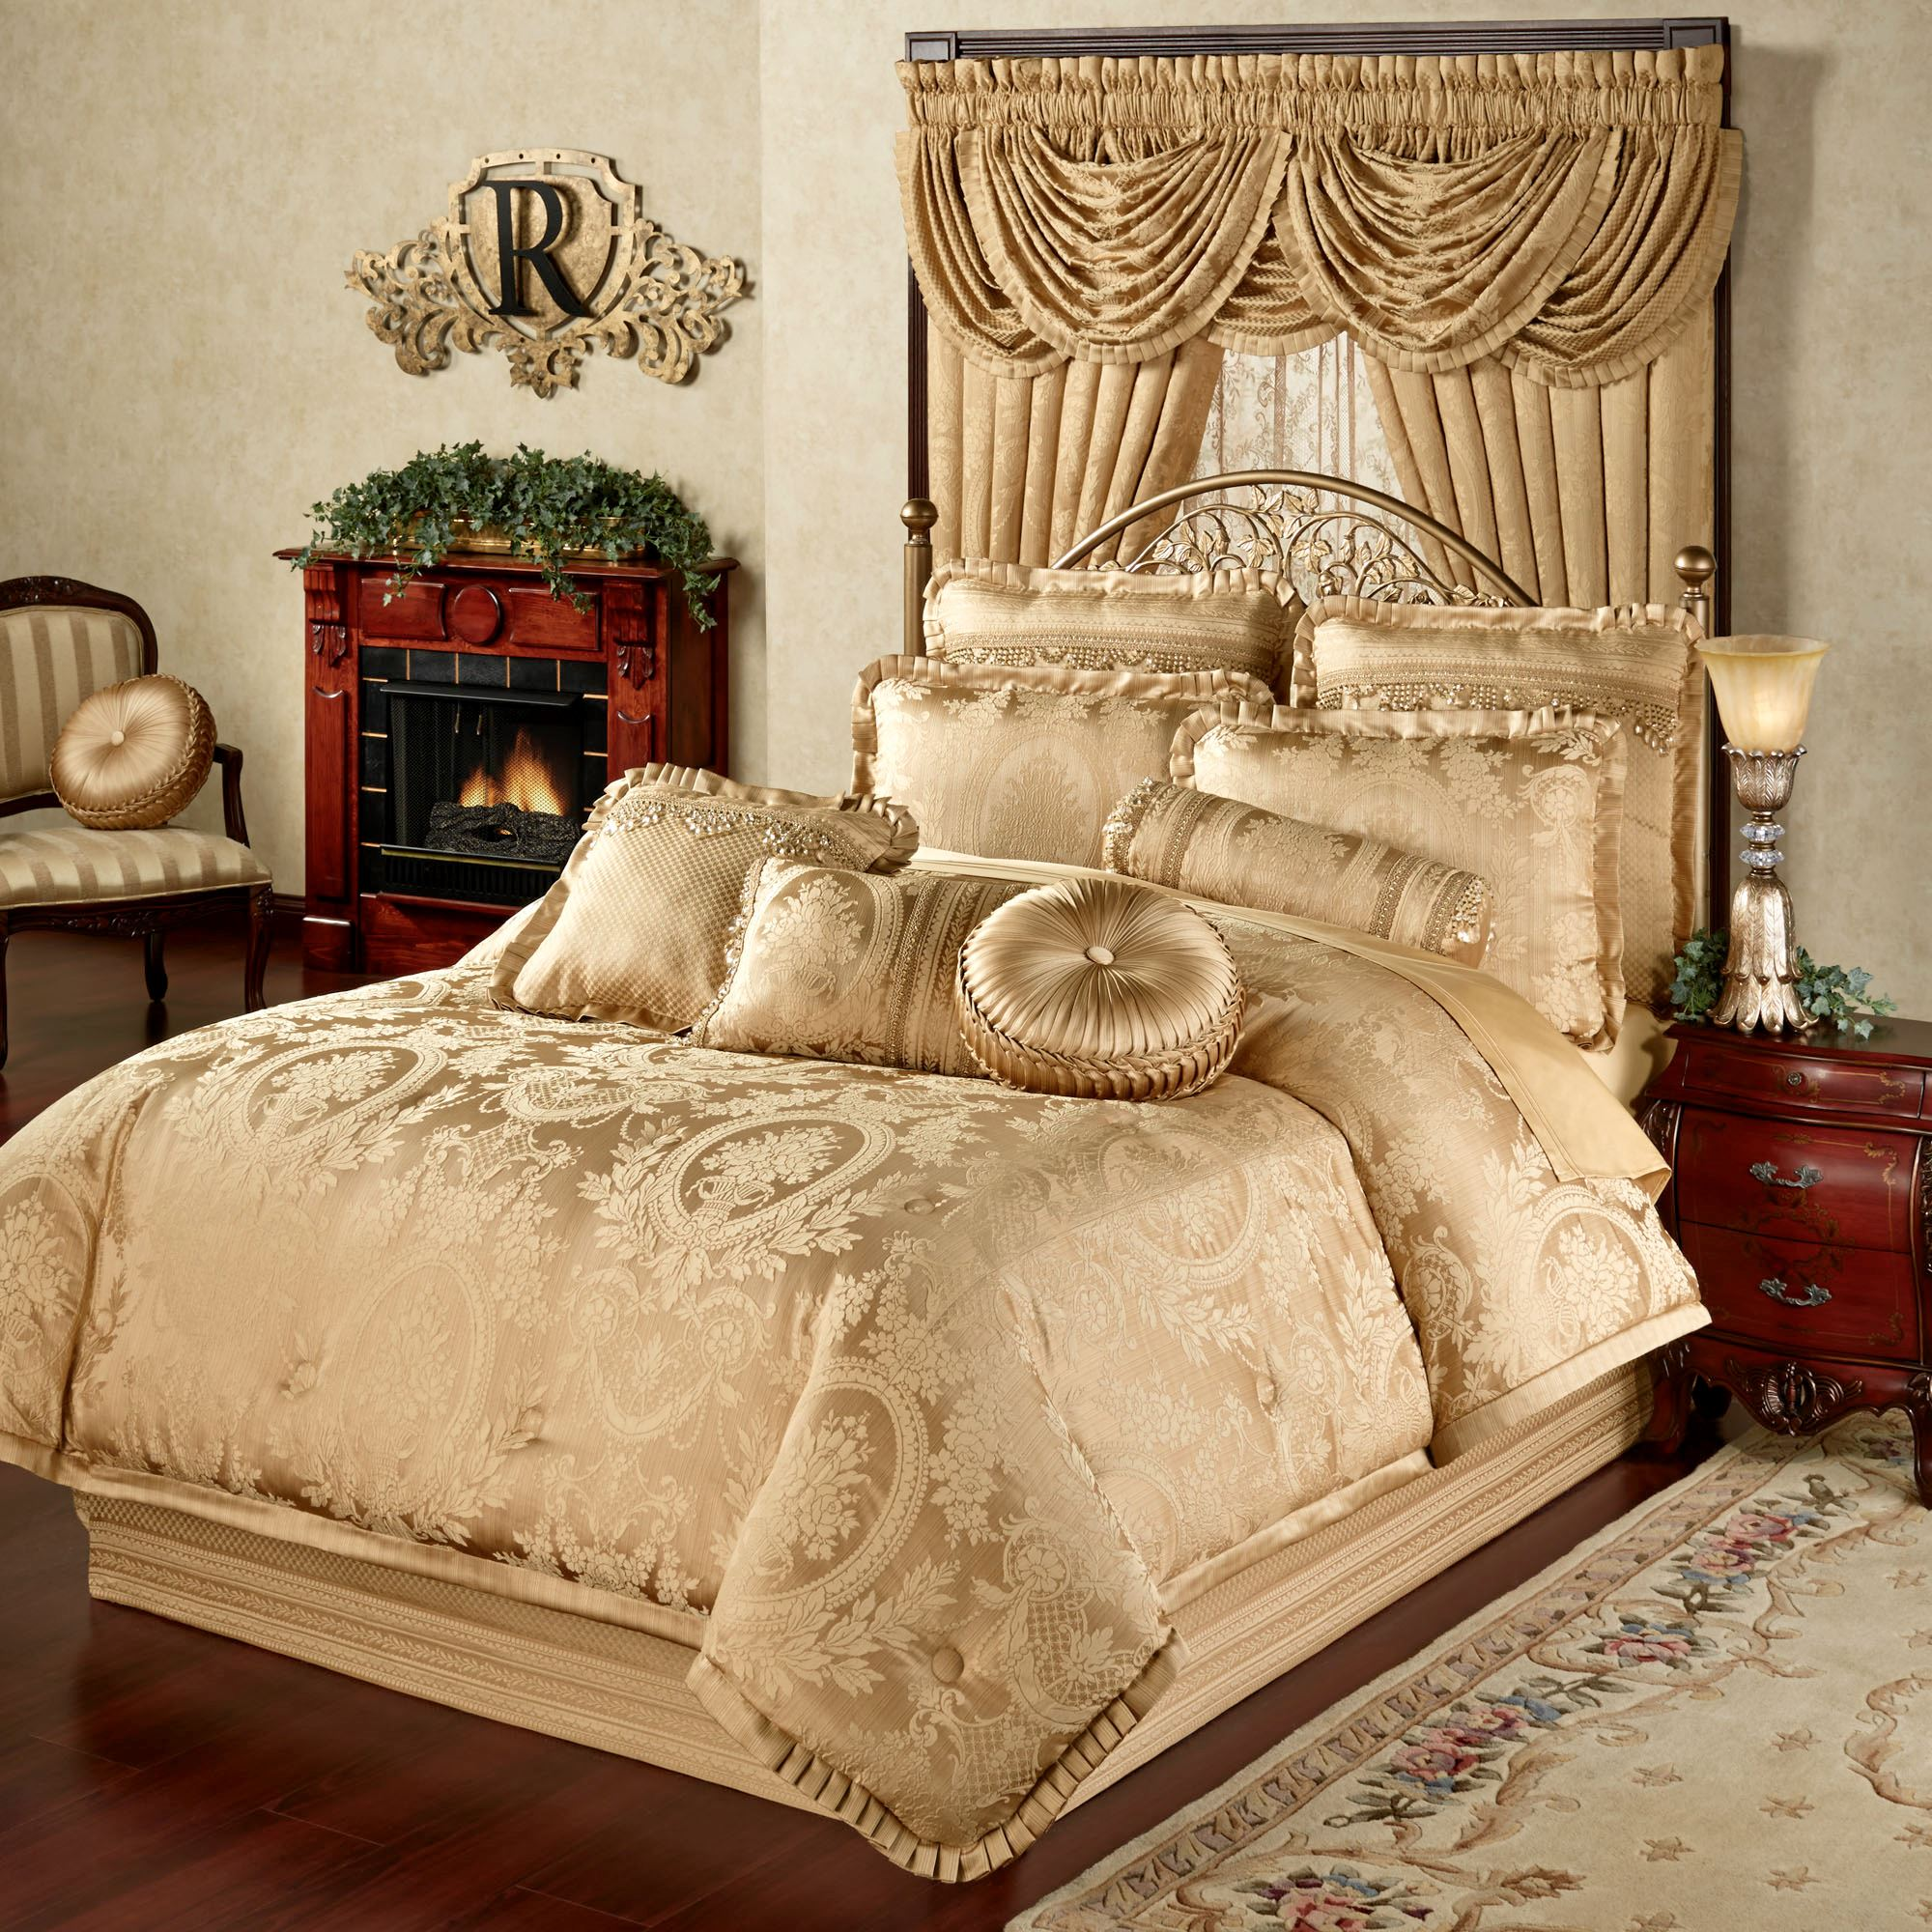 Luxury Comforter Sets | Belk Comforters | Bed Bath and Beyond Comforter